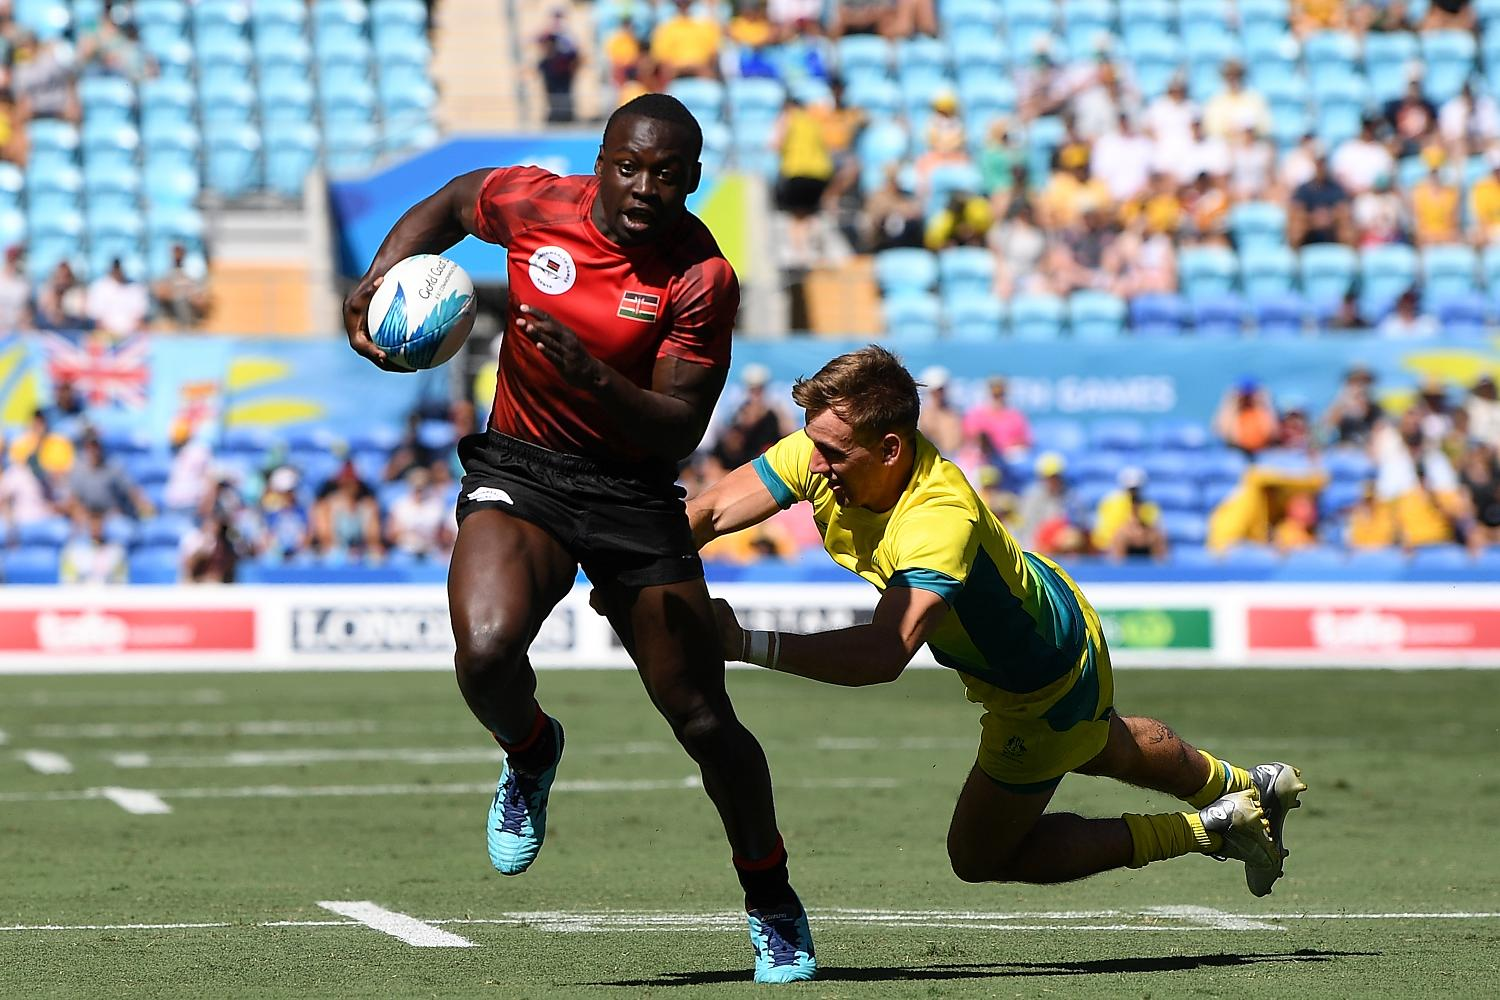 Gold Coast 2018 Commonwealth Games - Men's Sevens